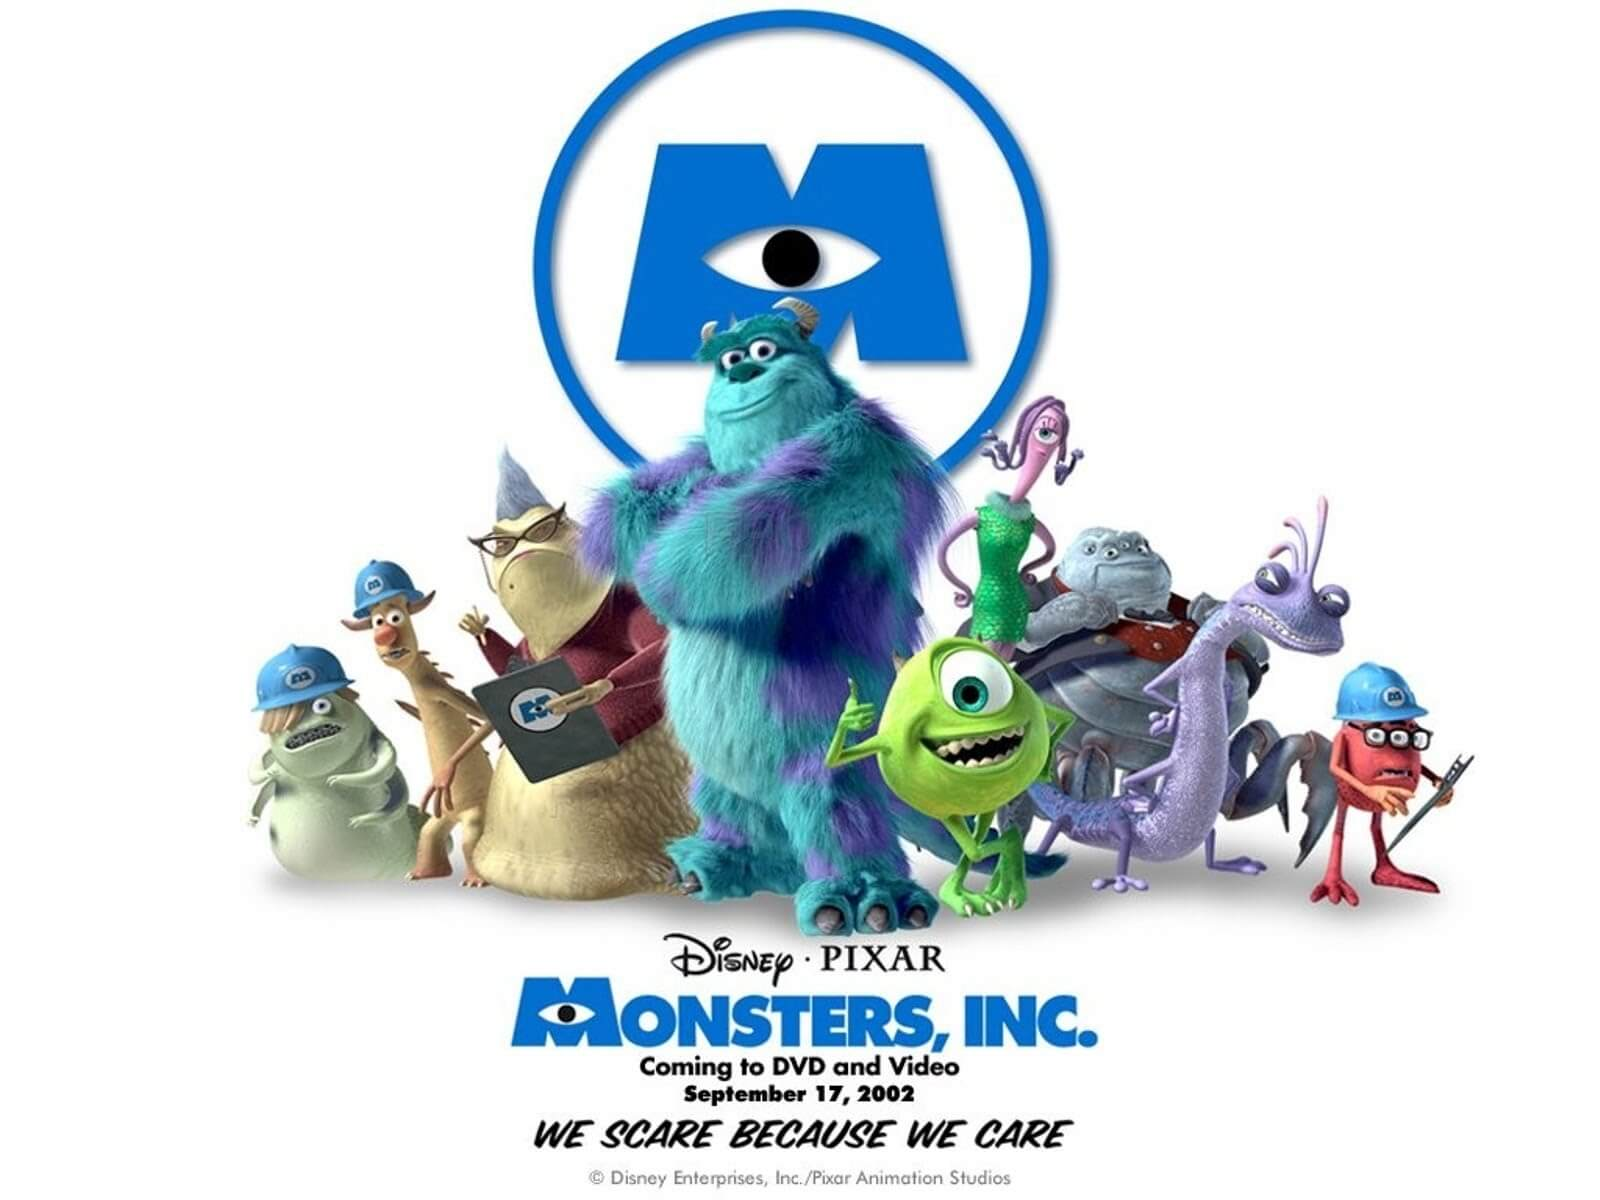 MONSTER INC halloween movie